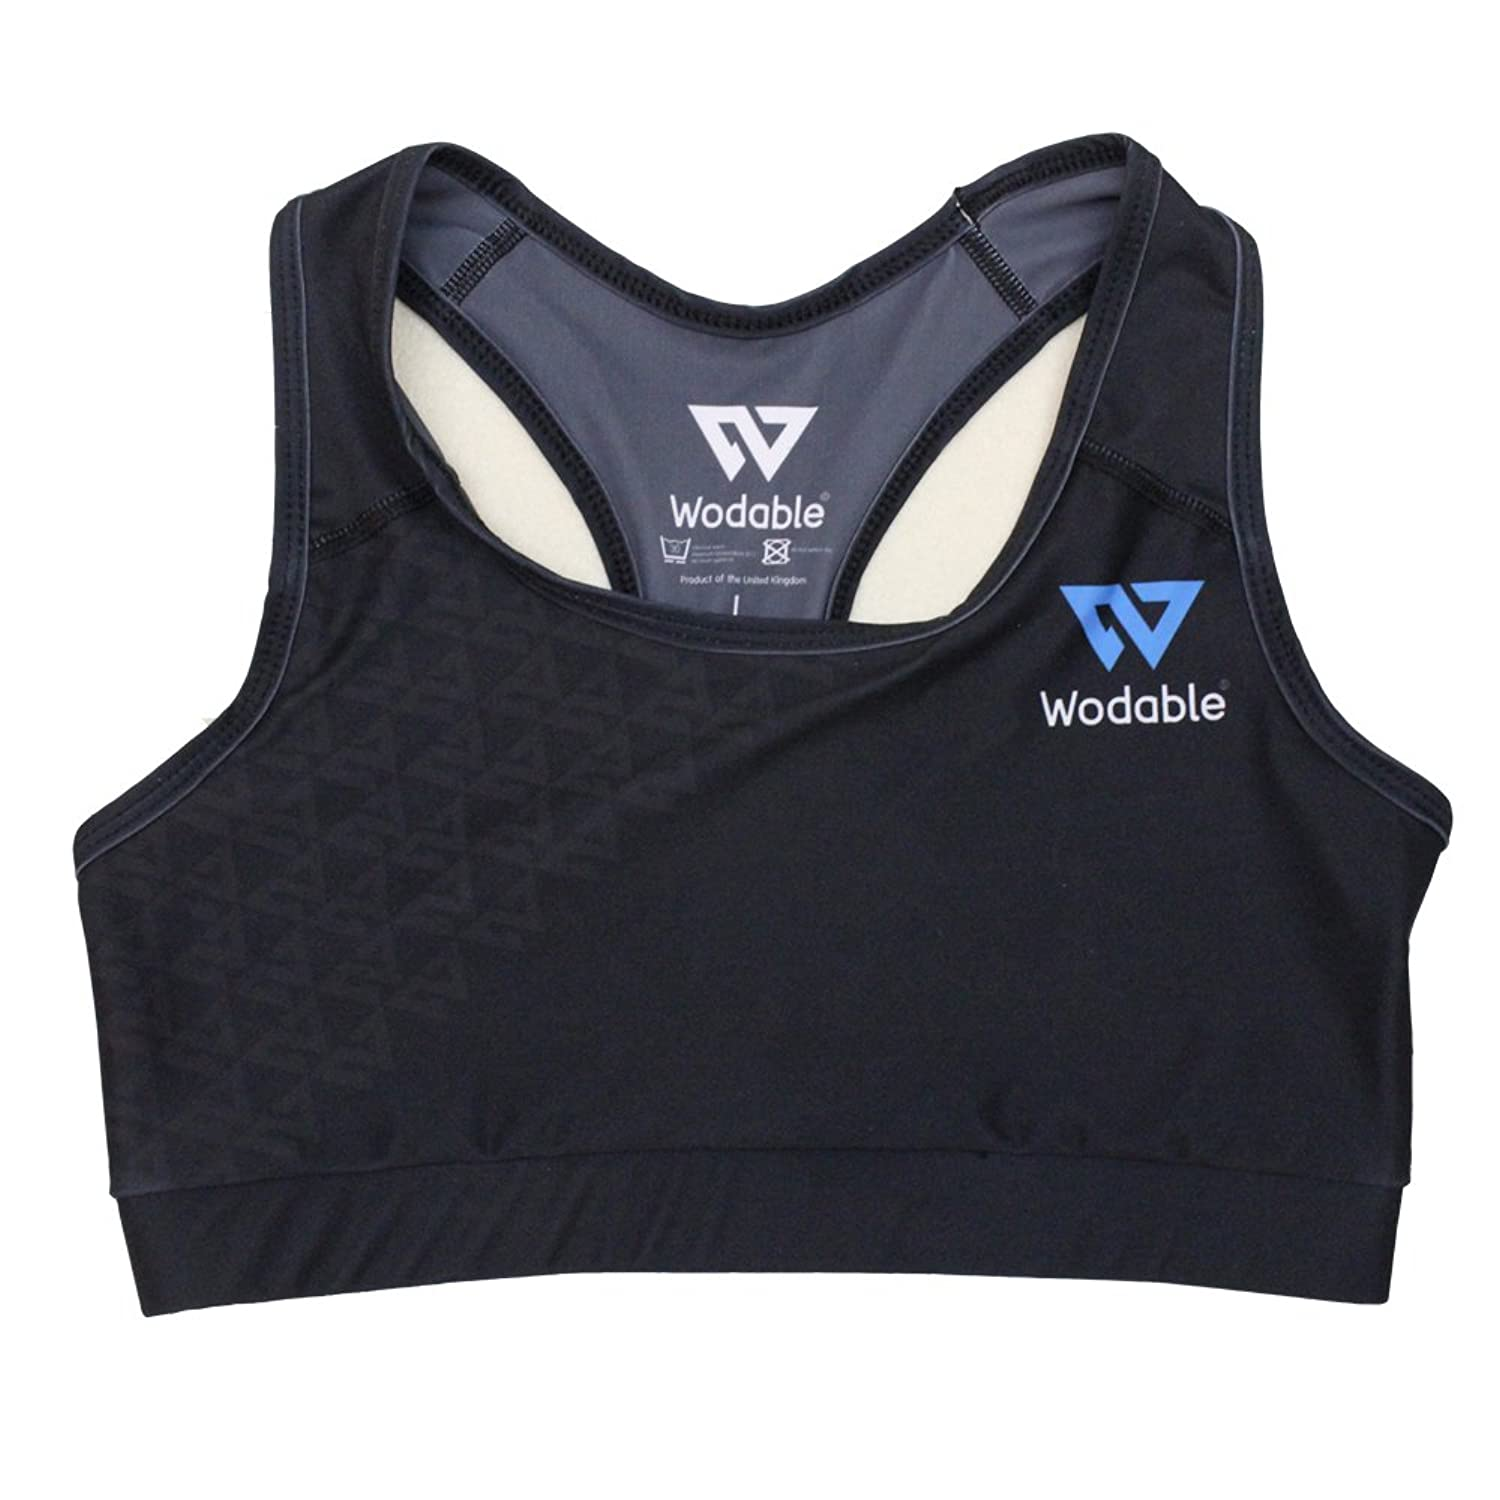 Wodable Compete Sports Bra - Racer Back Crossfit Gym Fitness